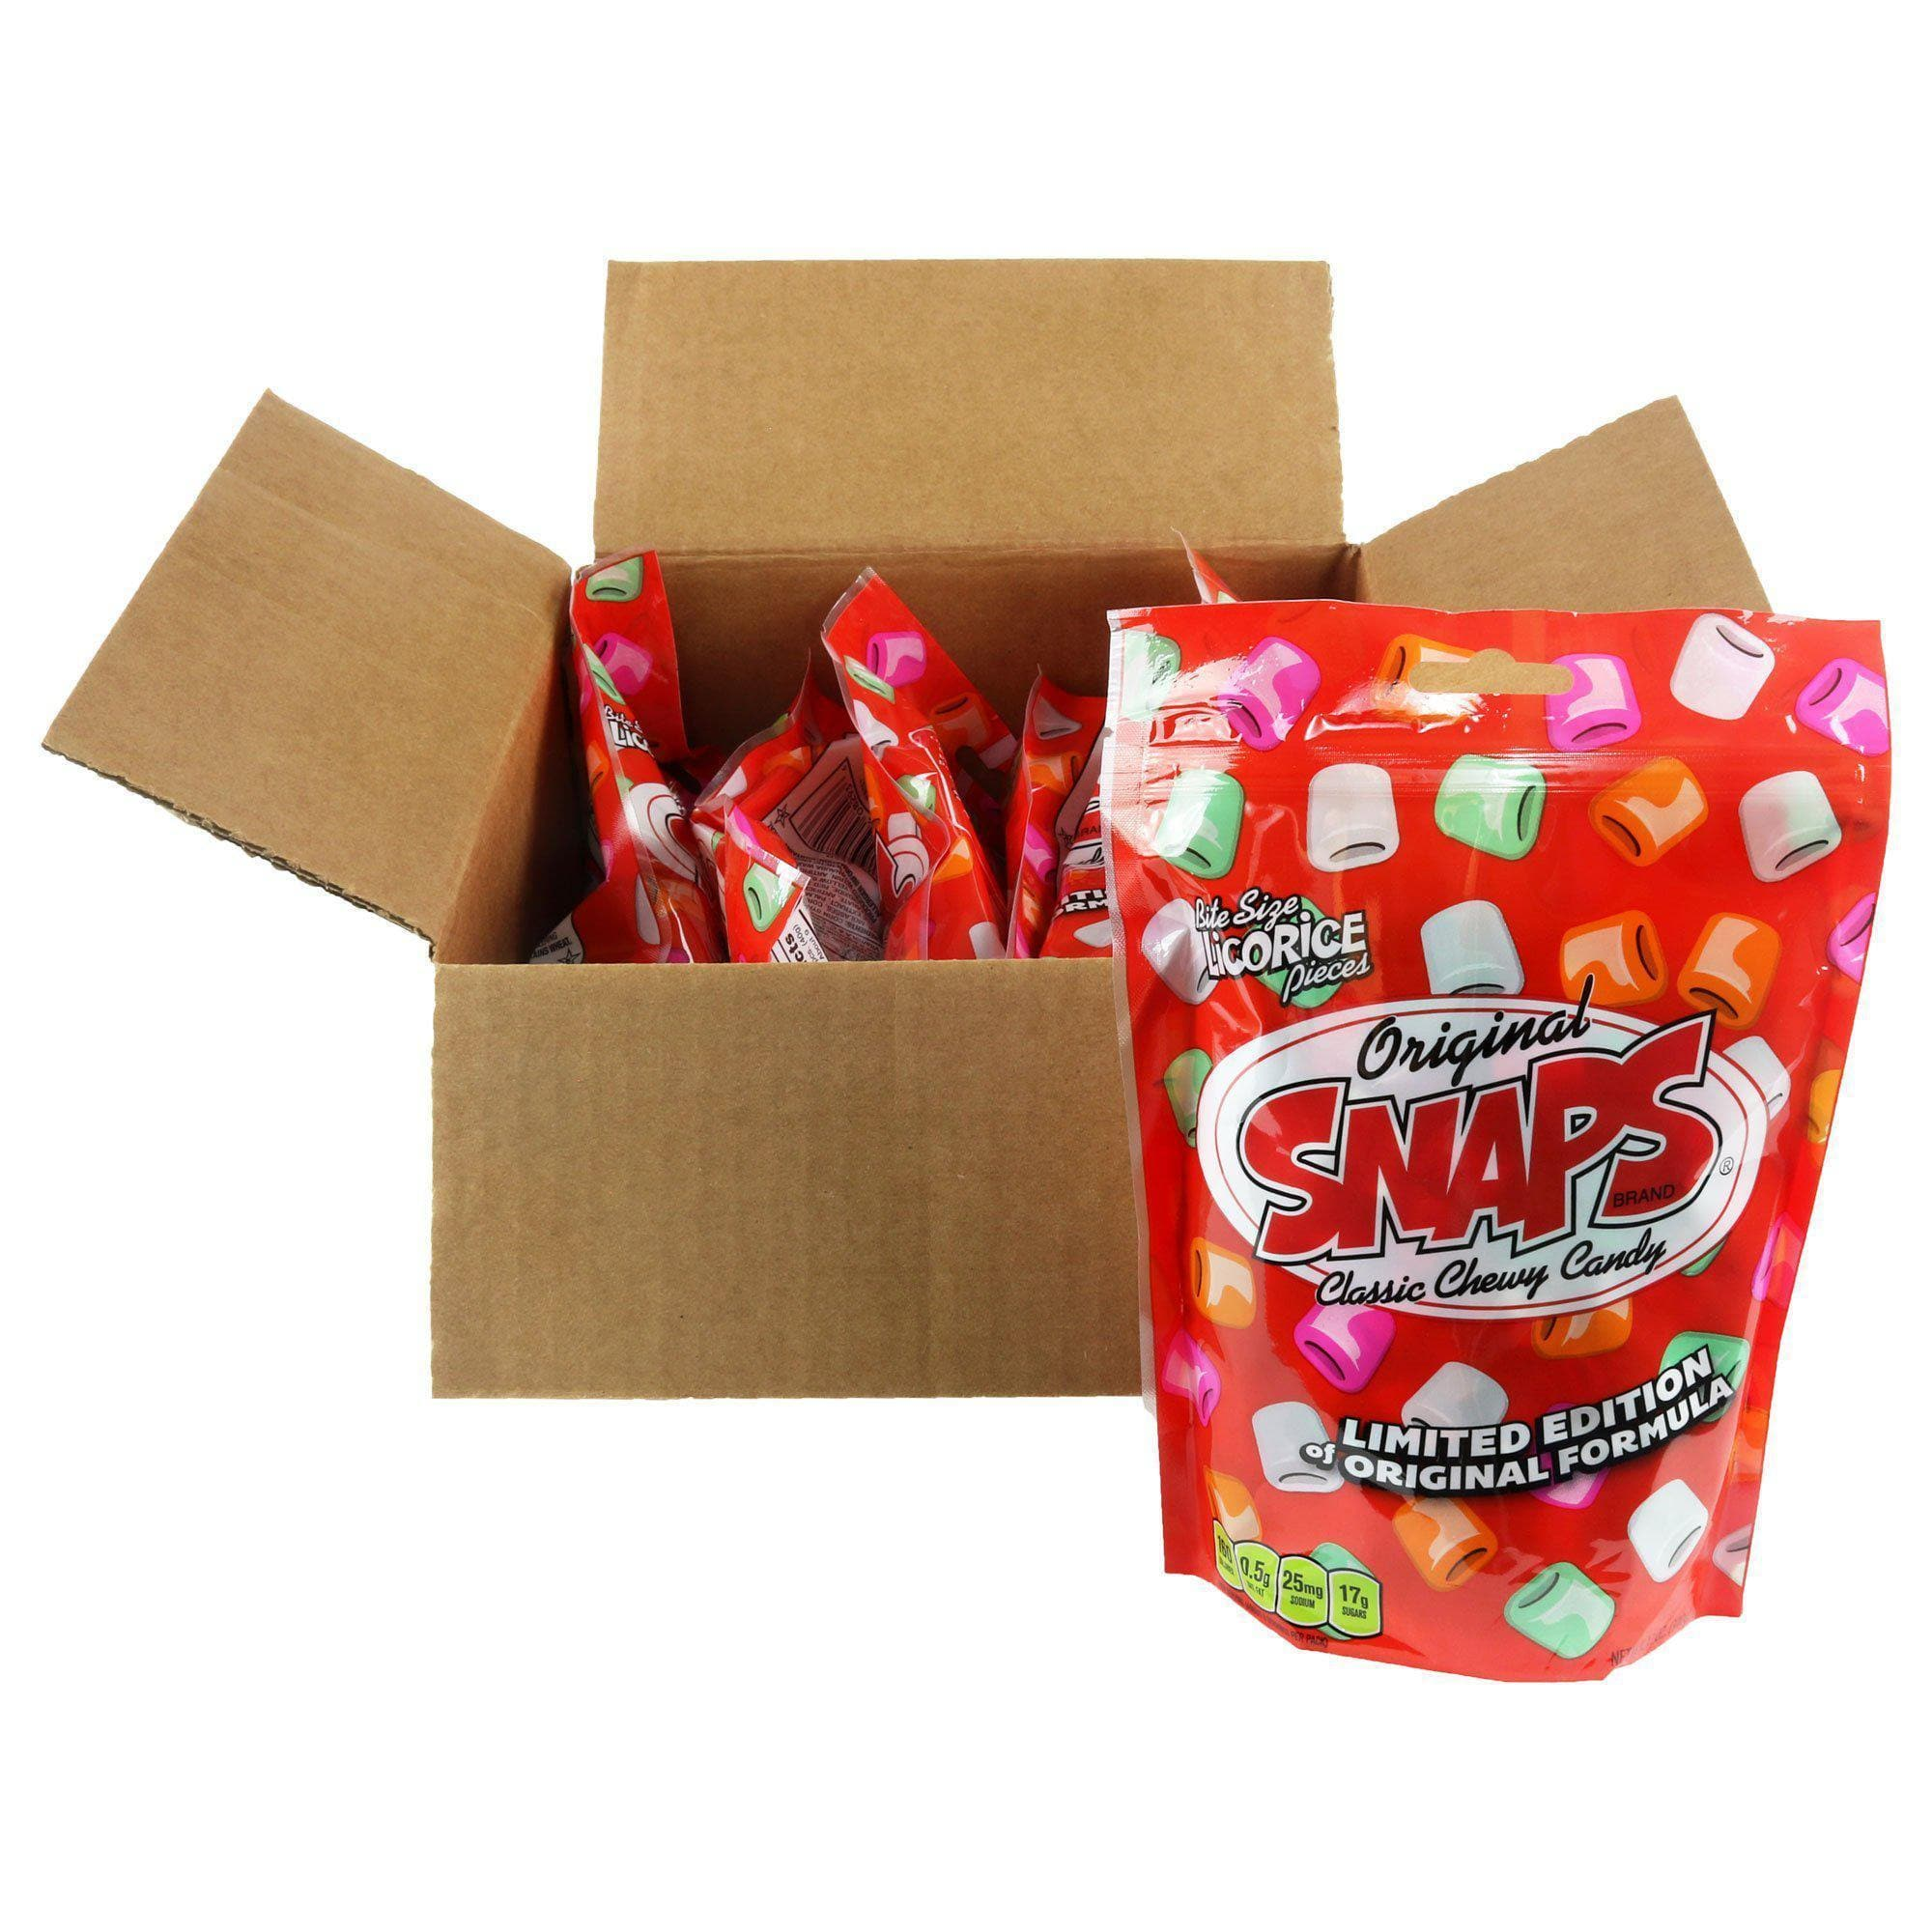 Original SNAPS Classic Chewy Candy, 12oz Bag